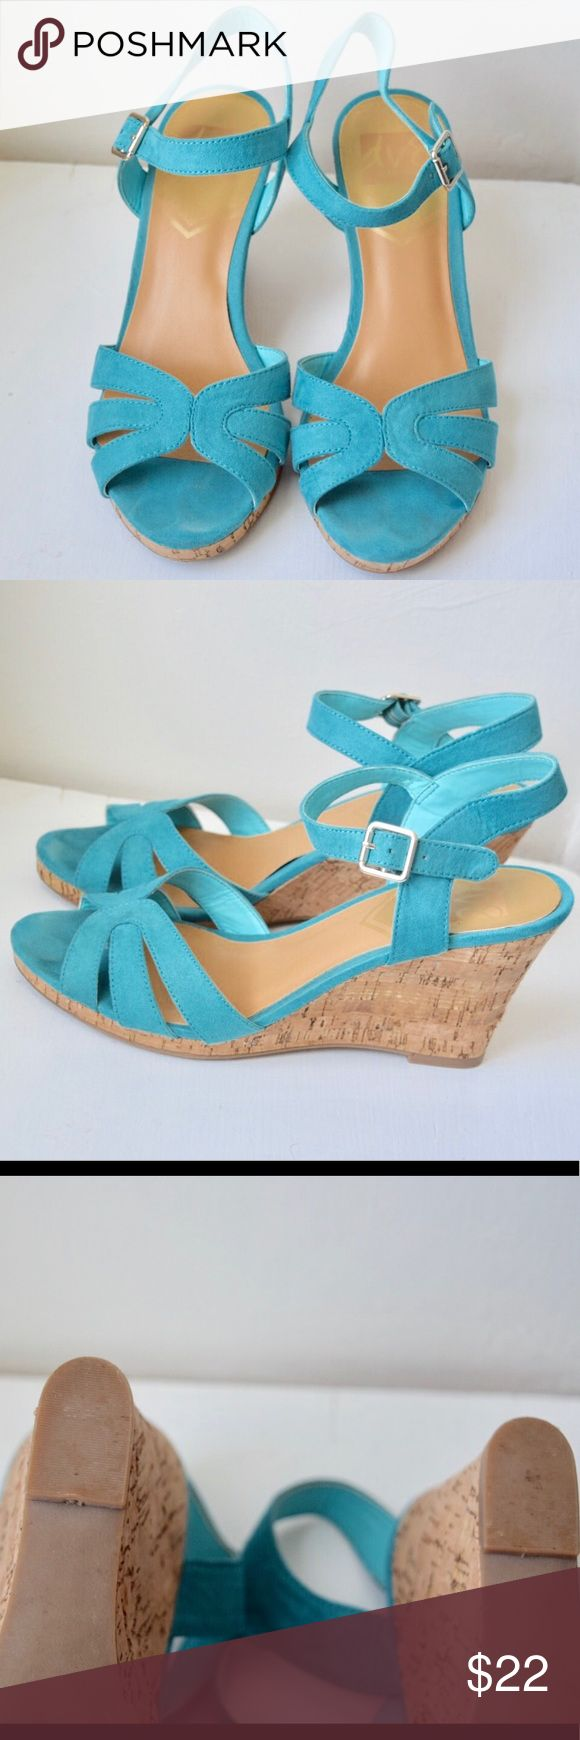 ♡ Cute Teal wedges! ♡ by Dolce Vita size 8️⃣ These Dolce Vita teal wedges are suede size 8. They're comfy and fun to wear as a pop of color with a navy dress! Dolce Vita Shoes Sandals